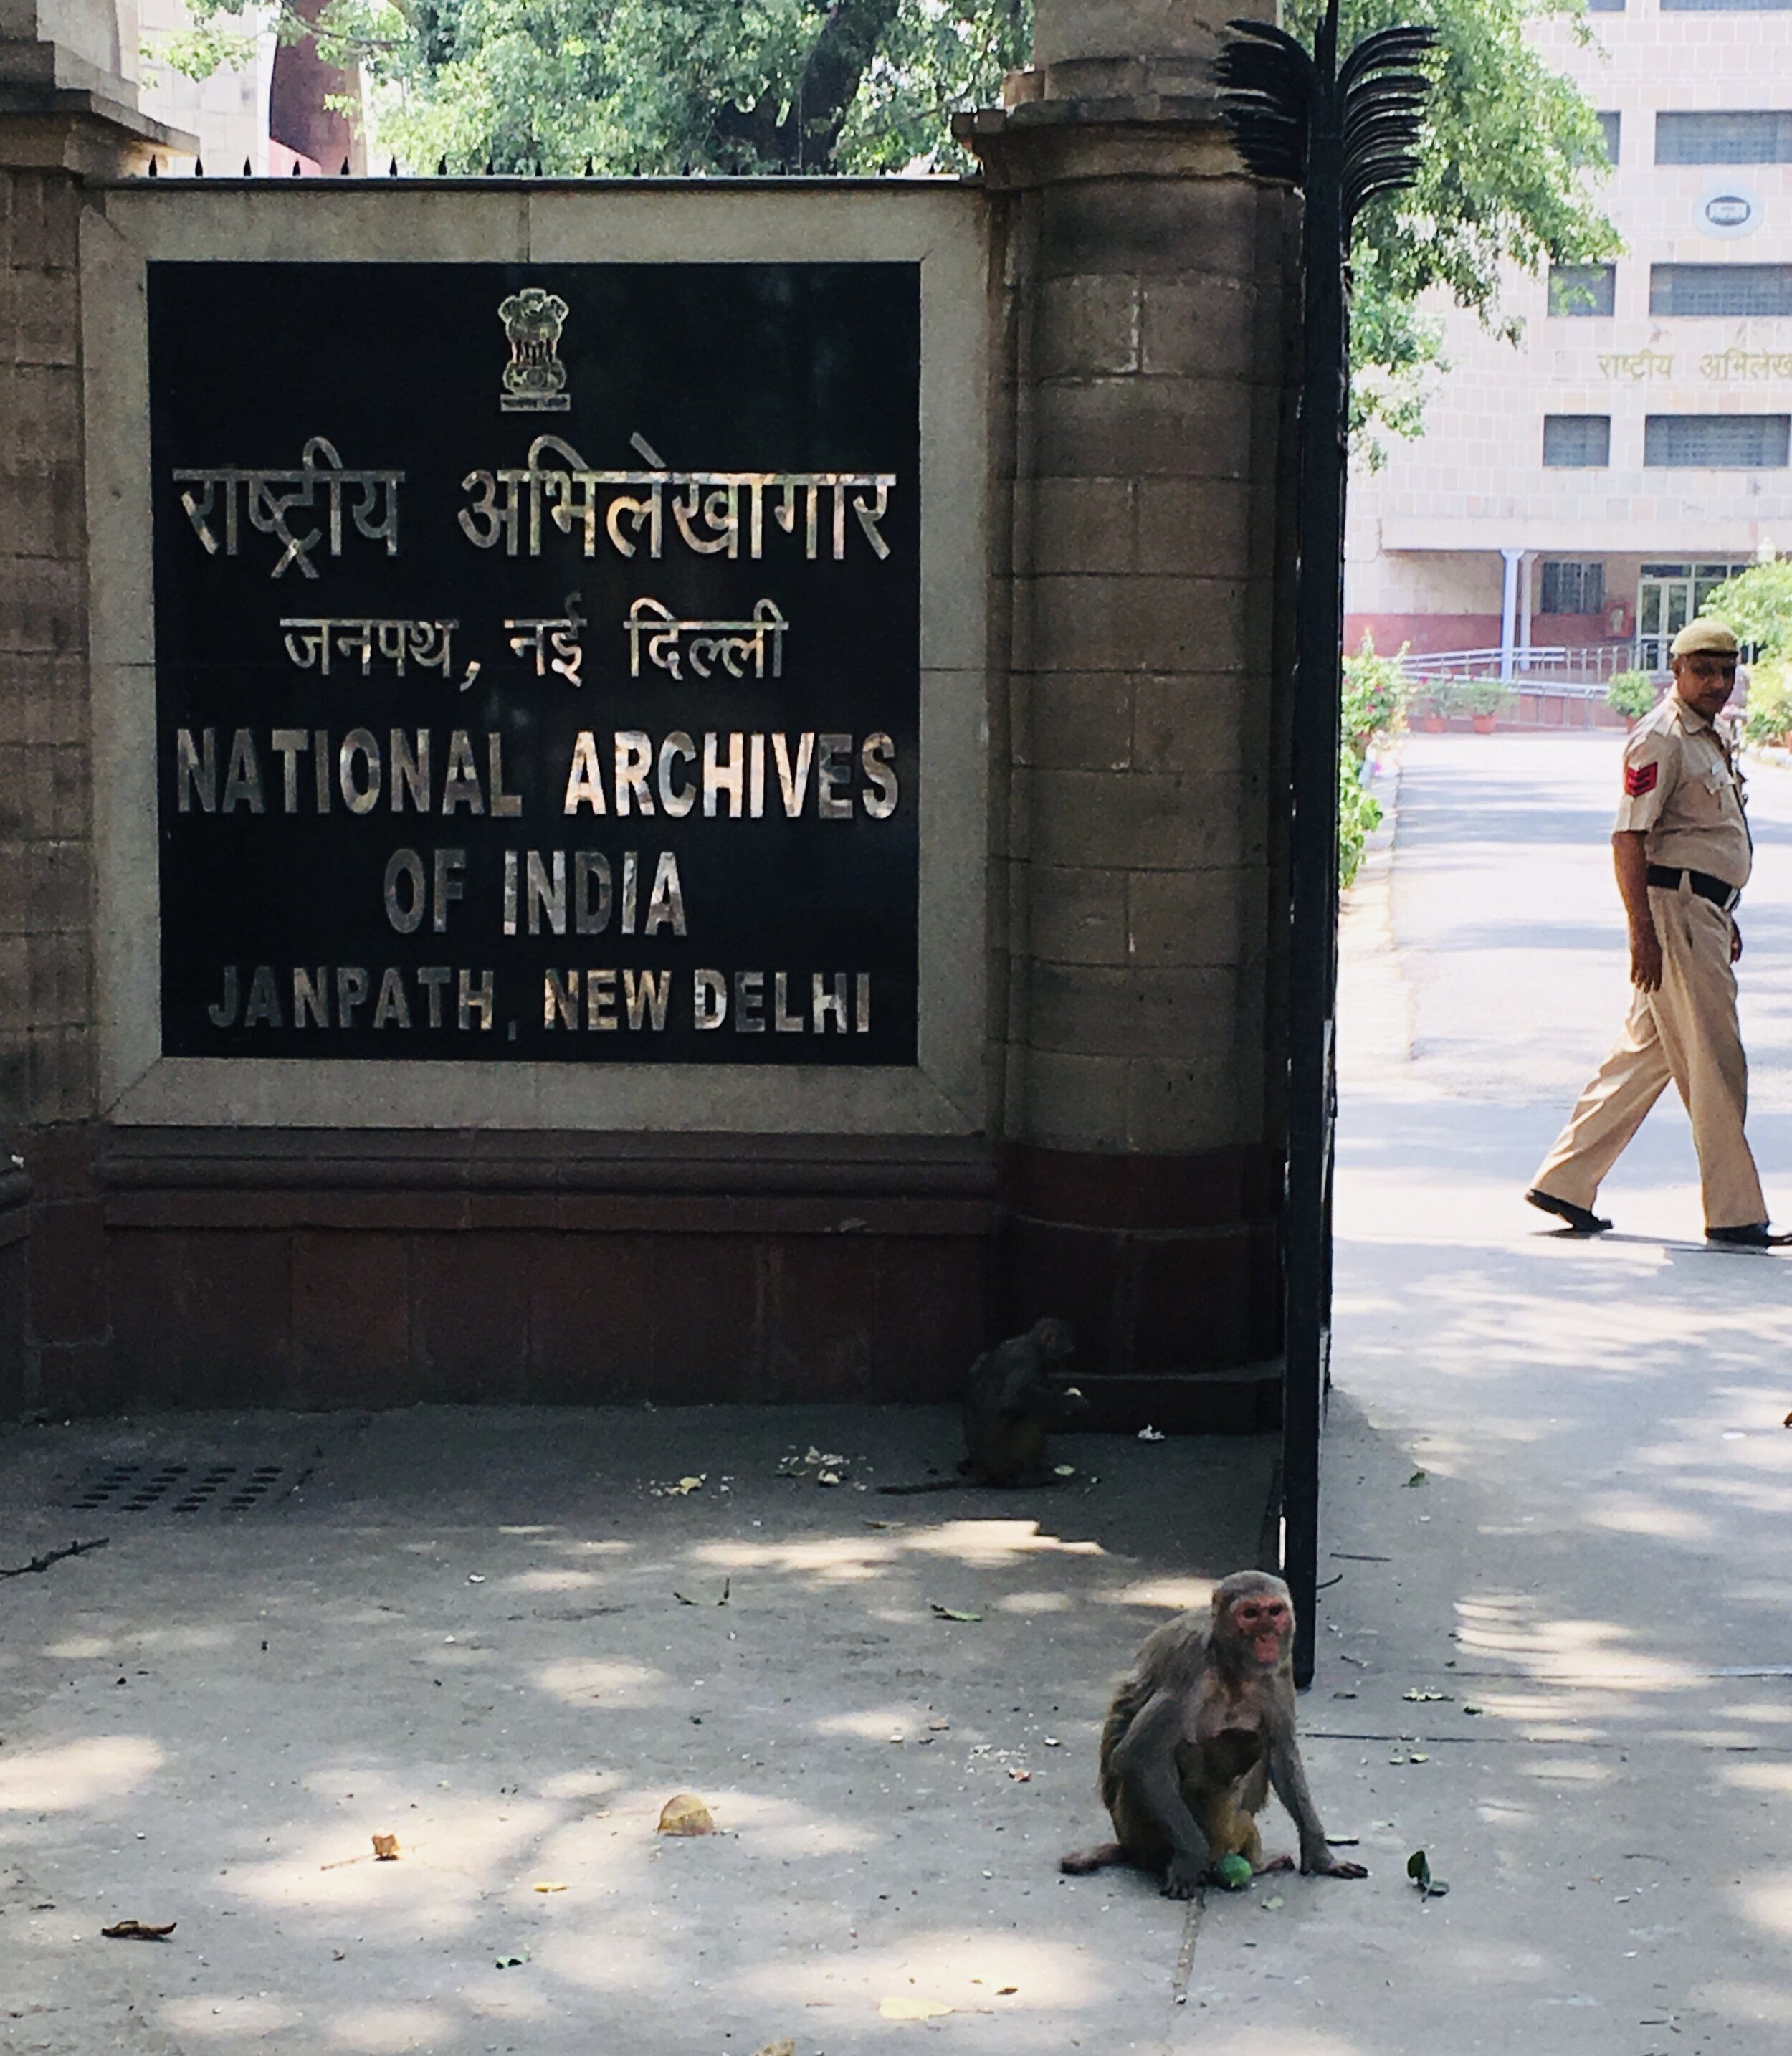 National Archives of India, New Delhi.